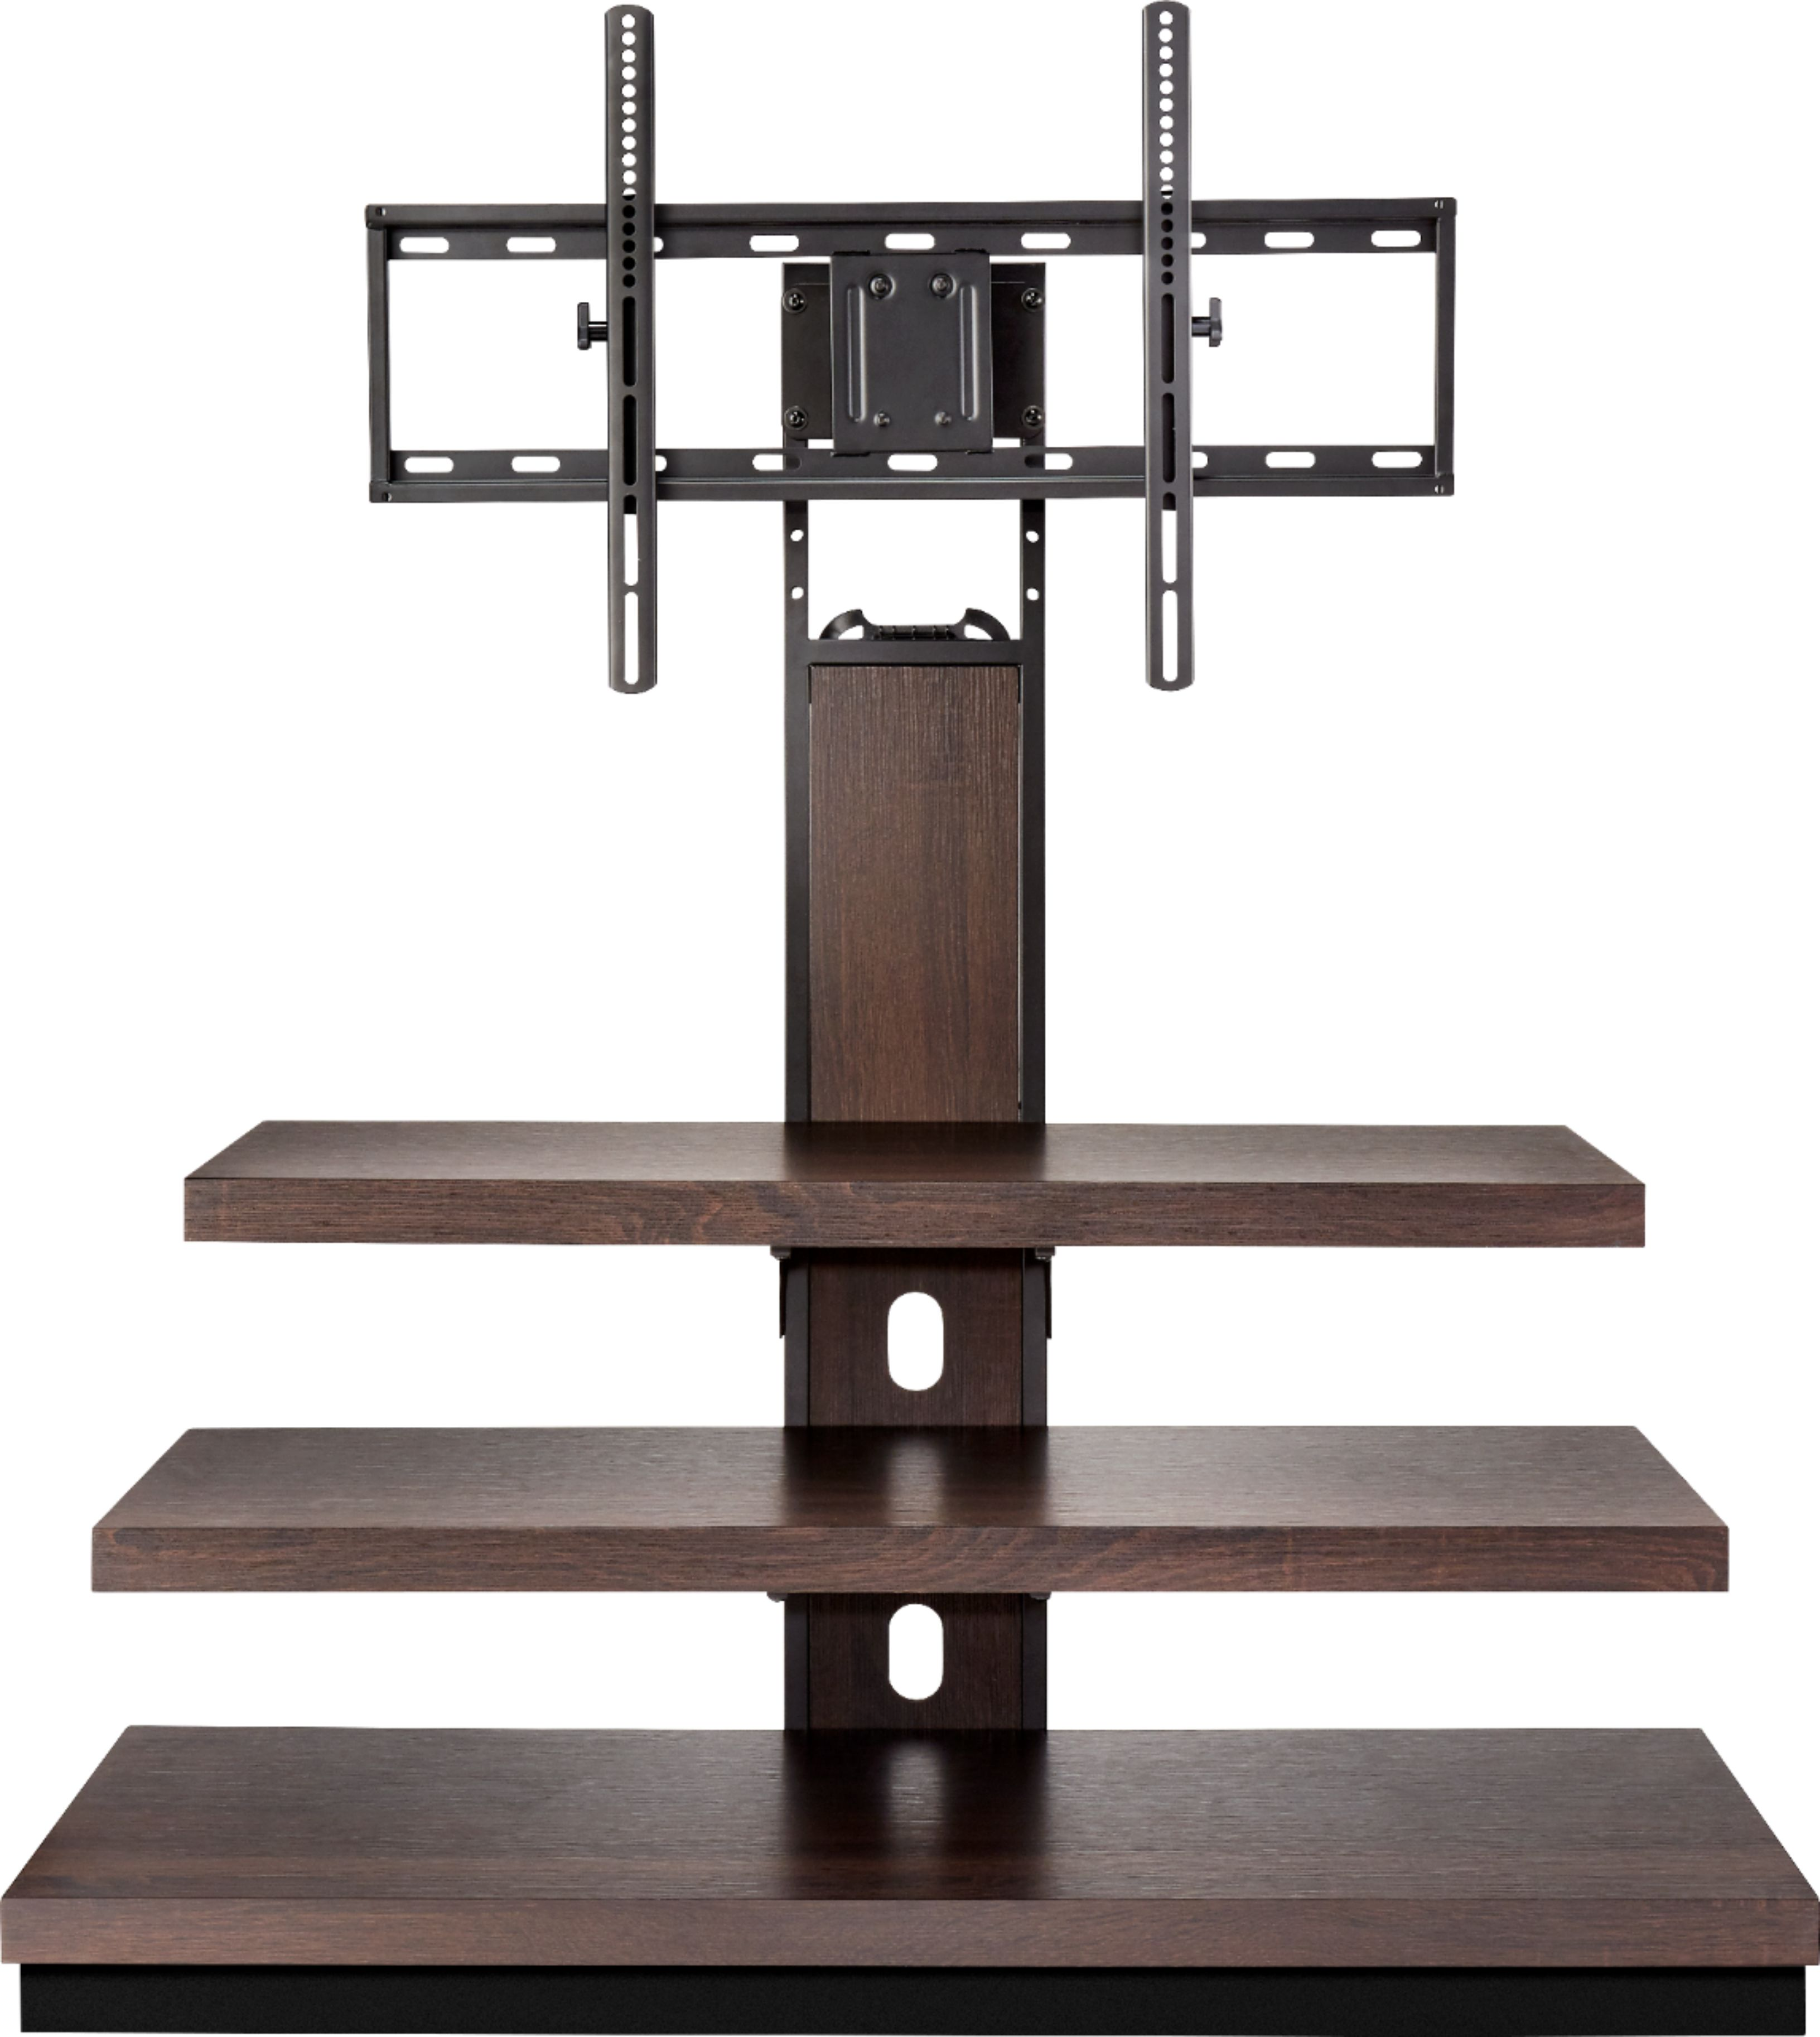 insignia tv stand for most flat panel tvs up to 55